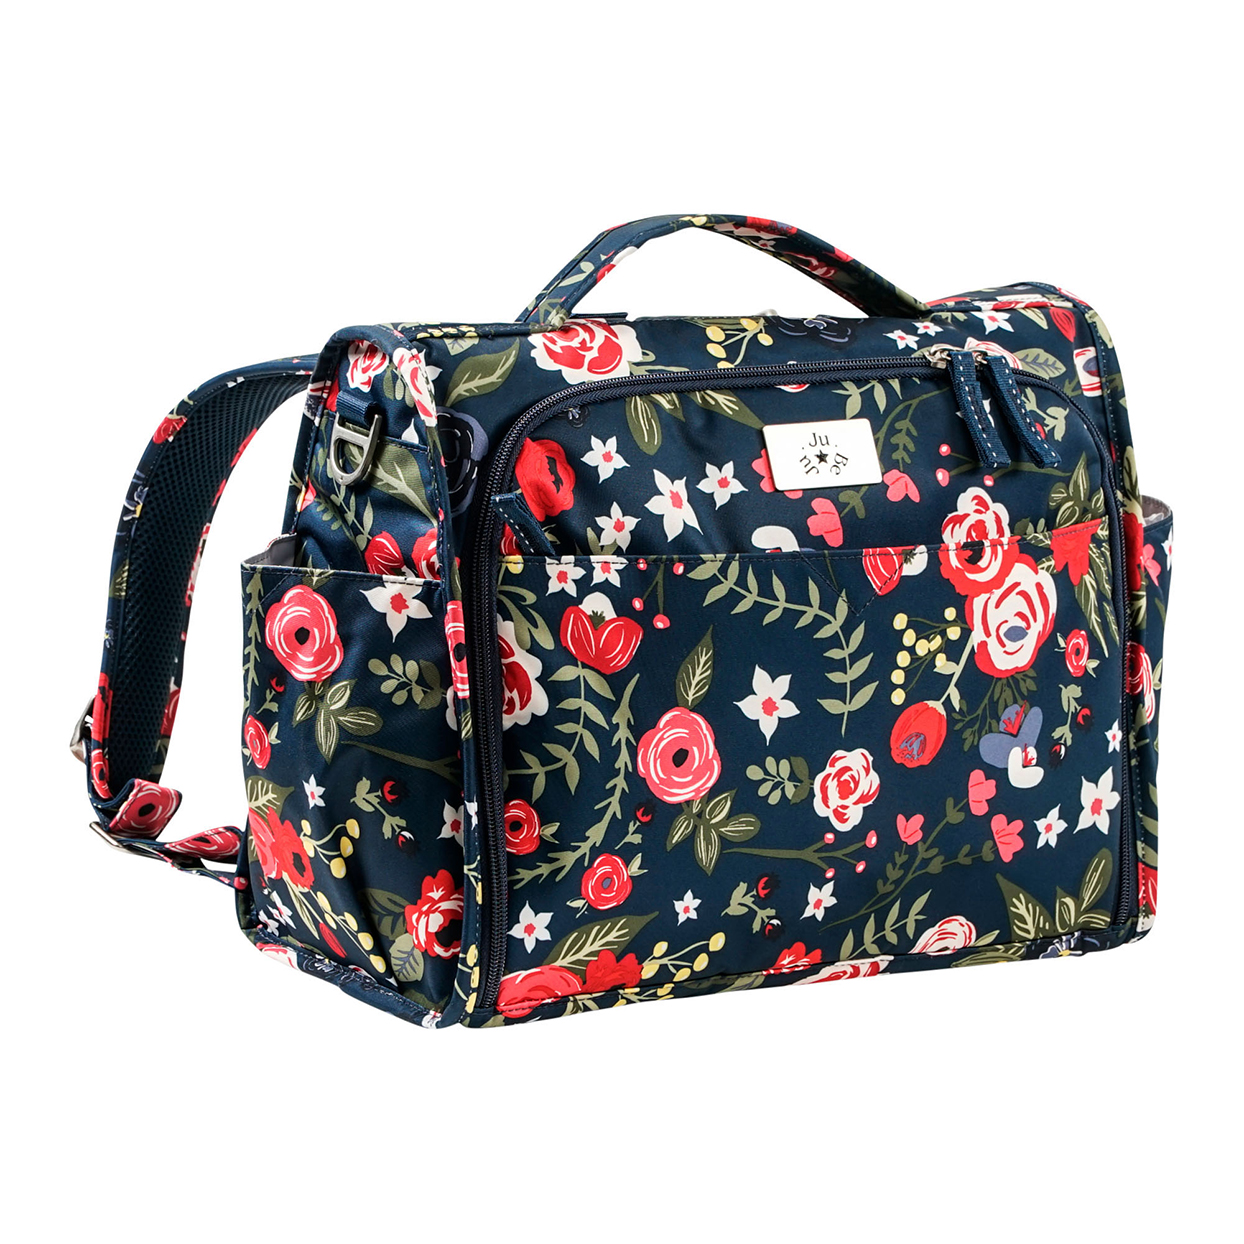 JuJuBe Classical Convertible Diaper Bag